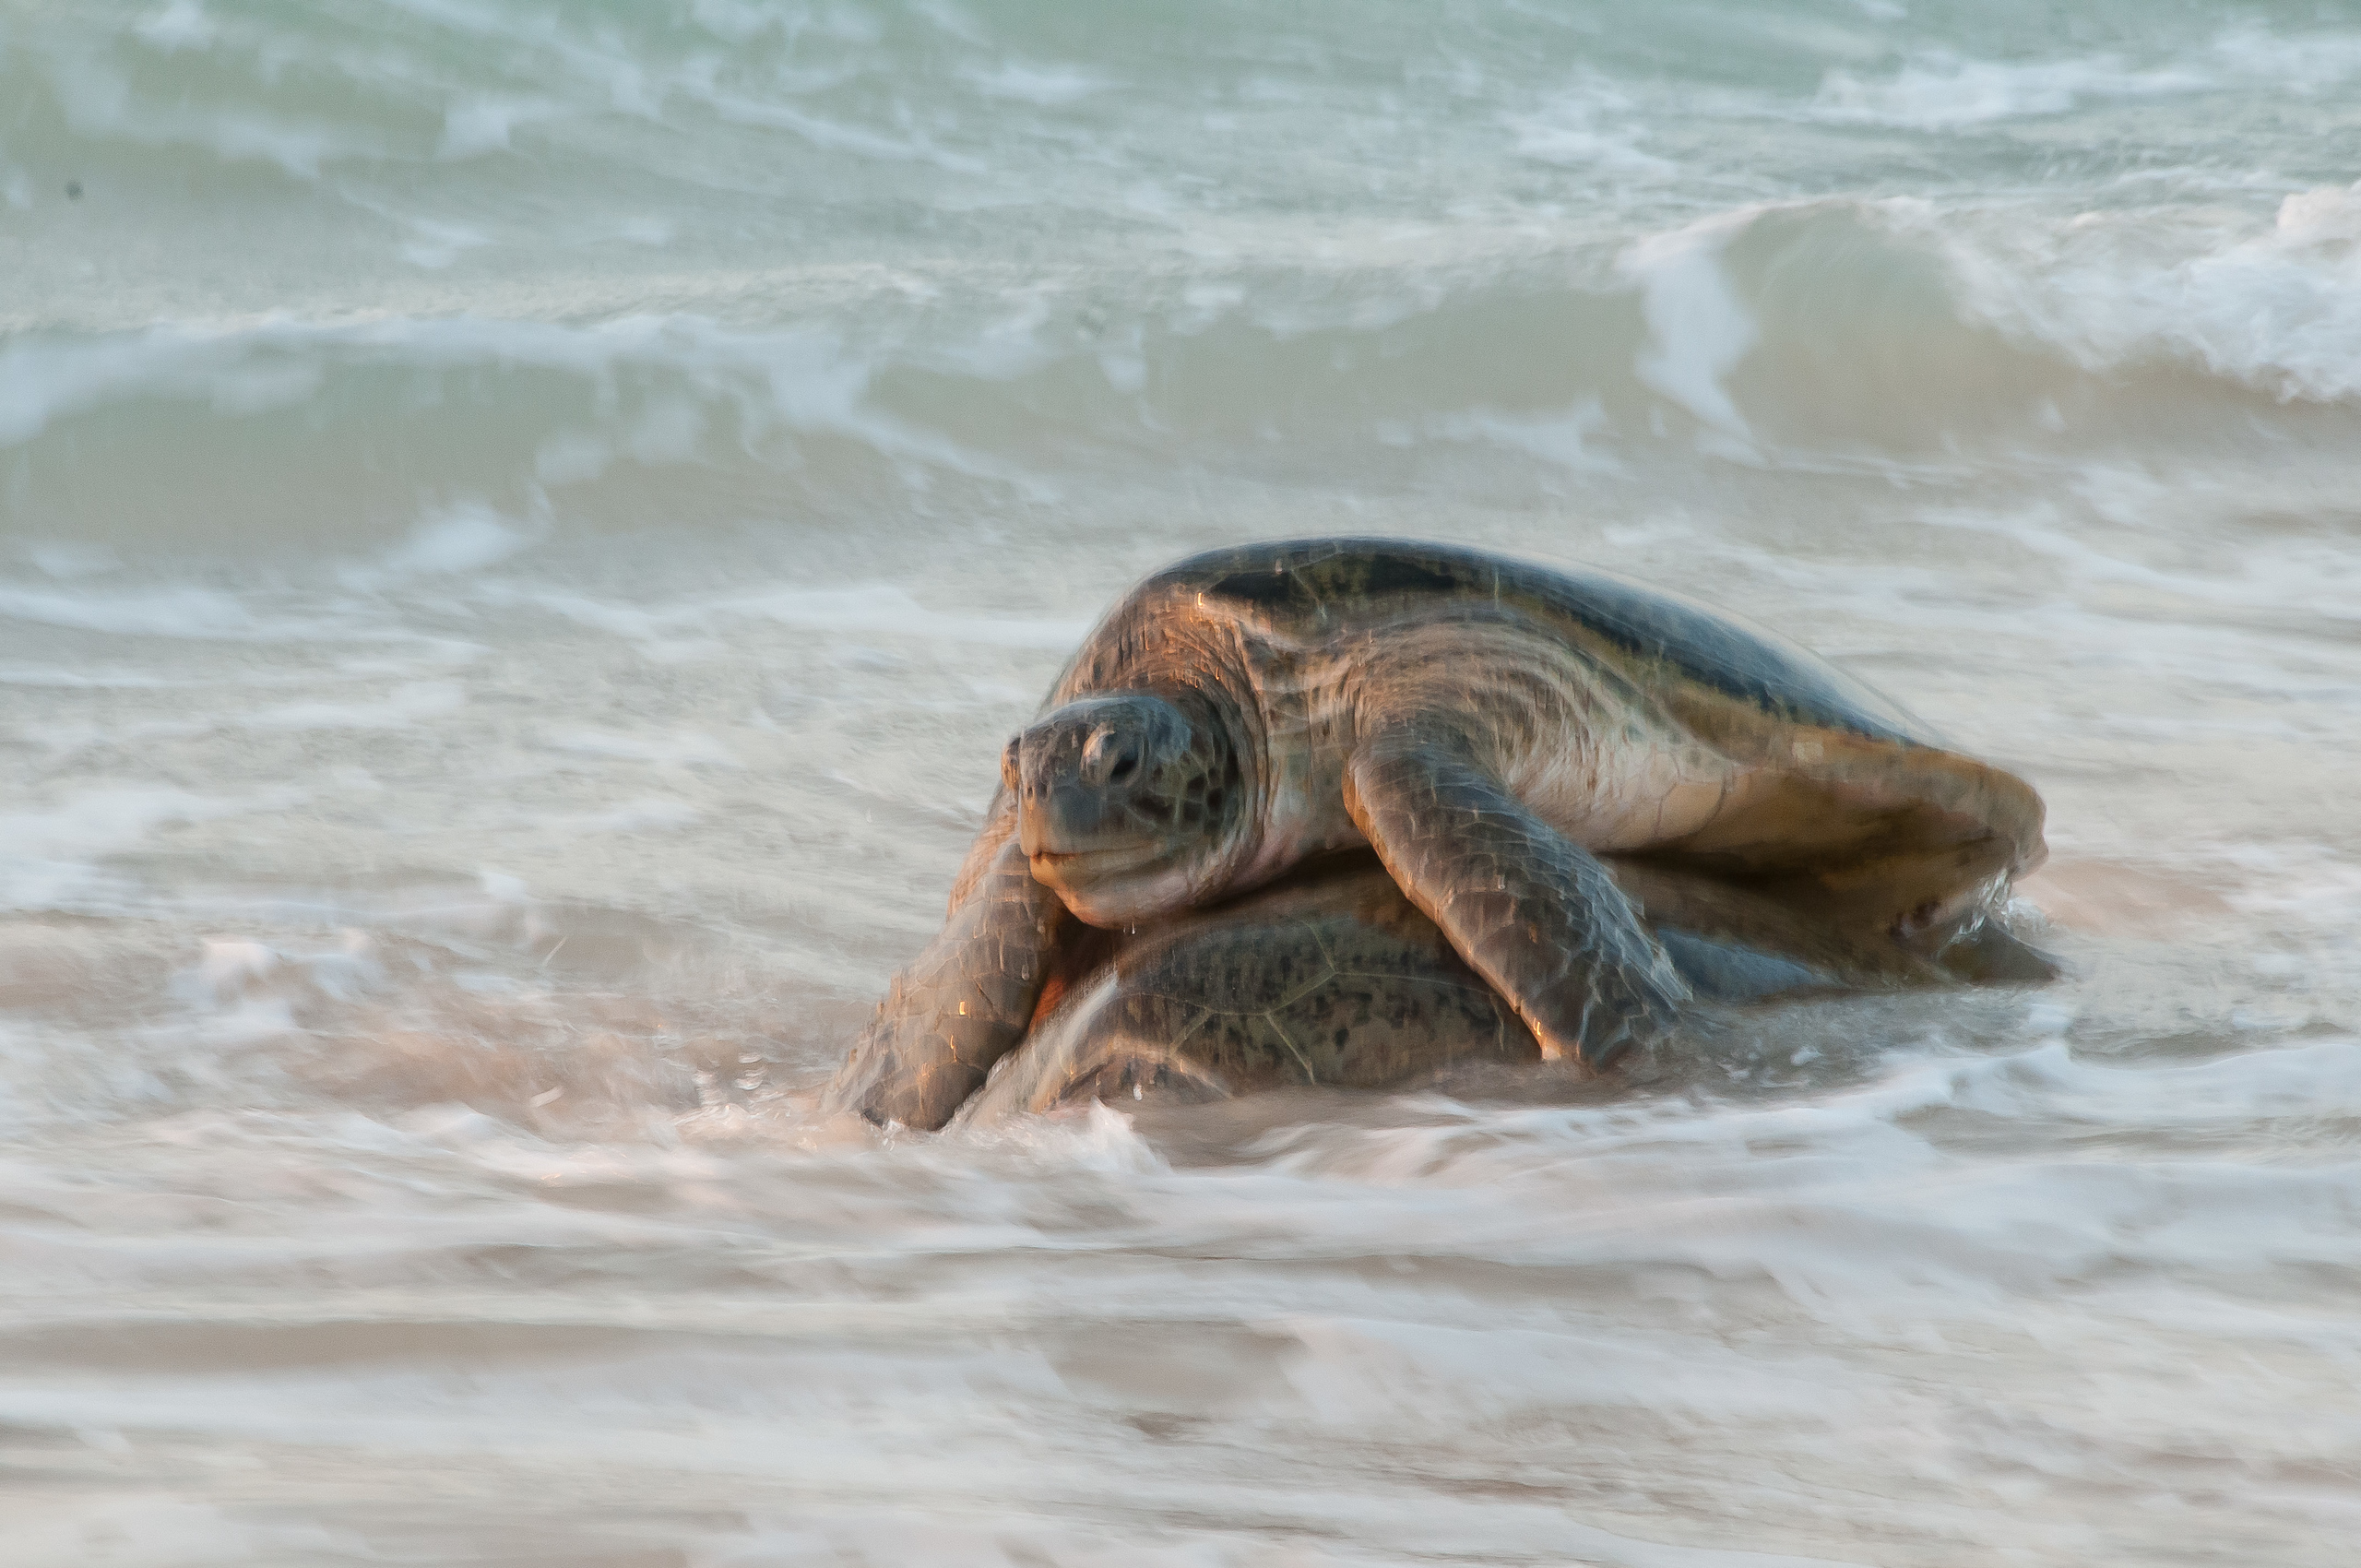 Turtles mating on the beach